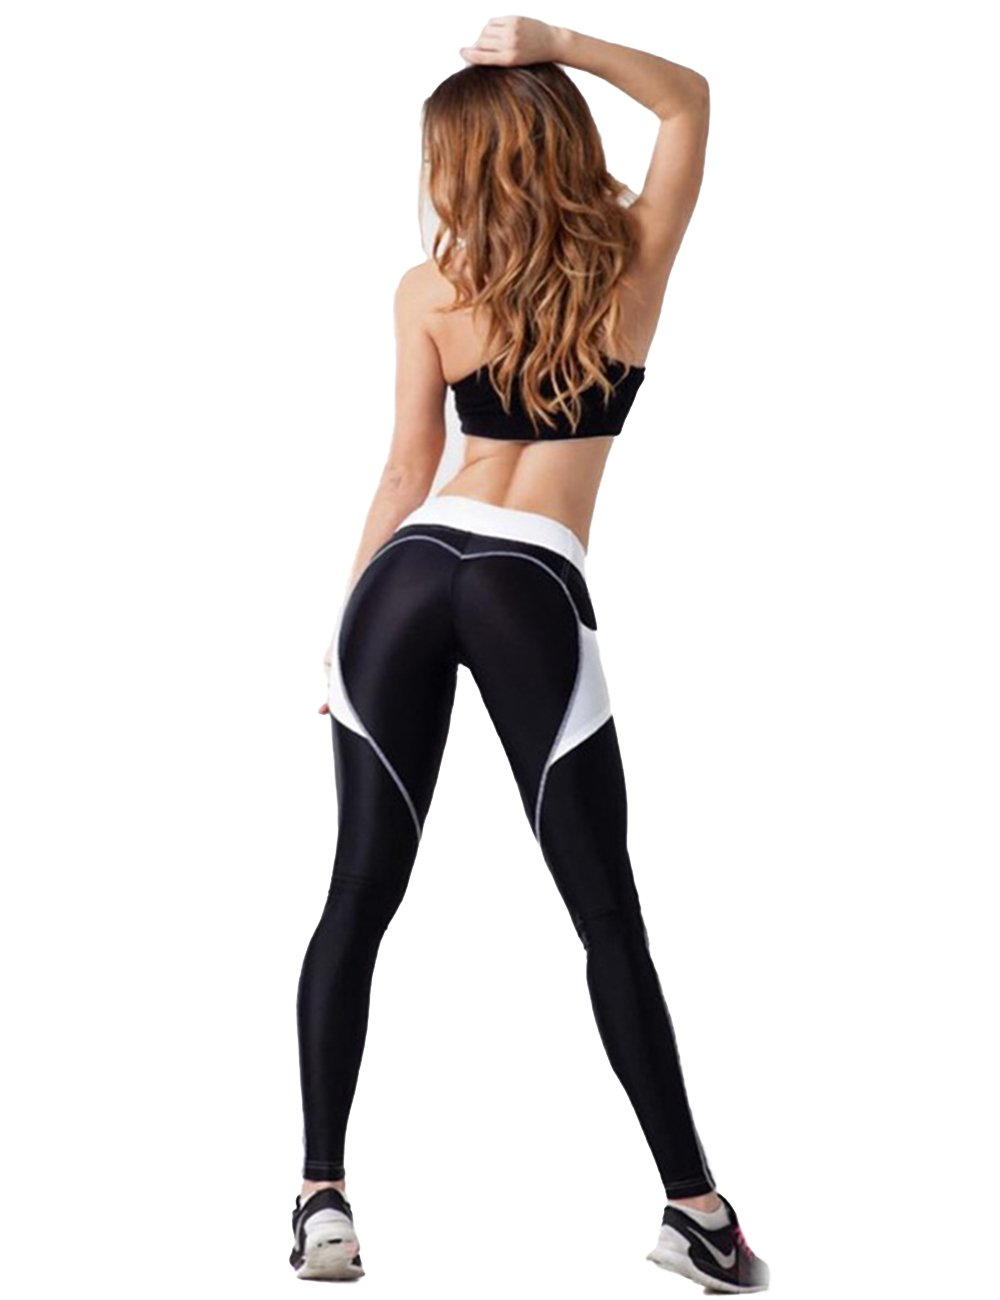 Women Heart-shaped Power Stretch High Waist Fitness Running Workout Leggings